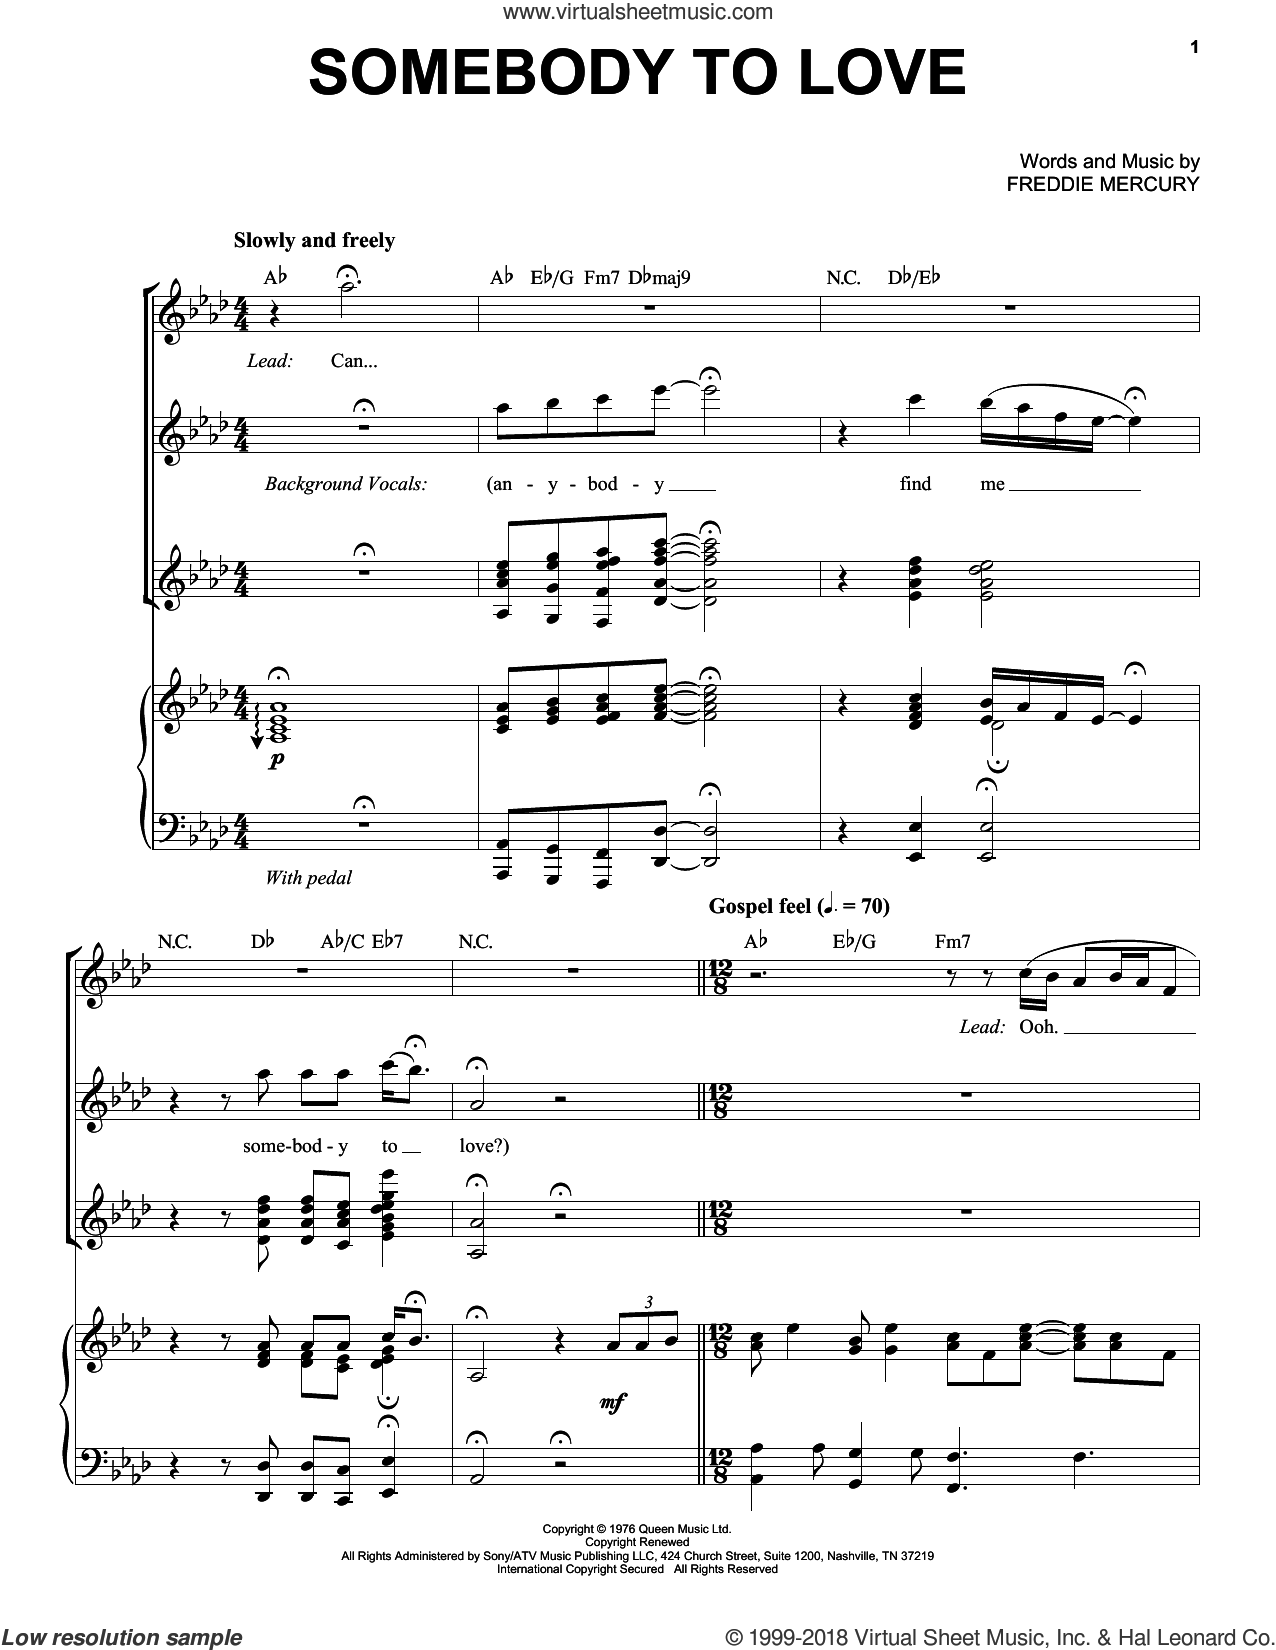 Somebody To Love sheet music for voice and piano by Queen and Freddie Mercury, intermediate skill level